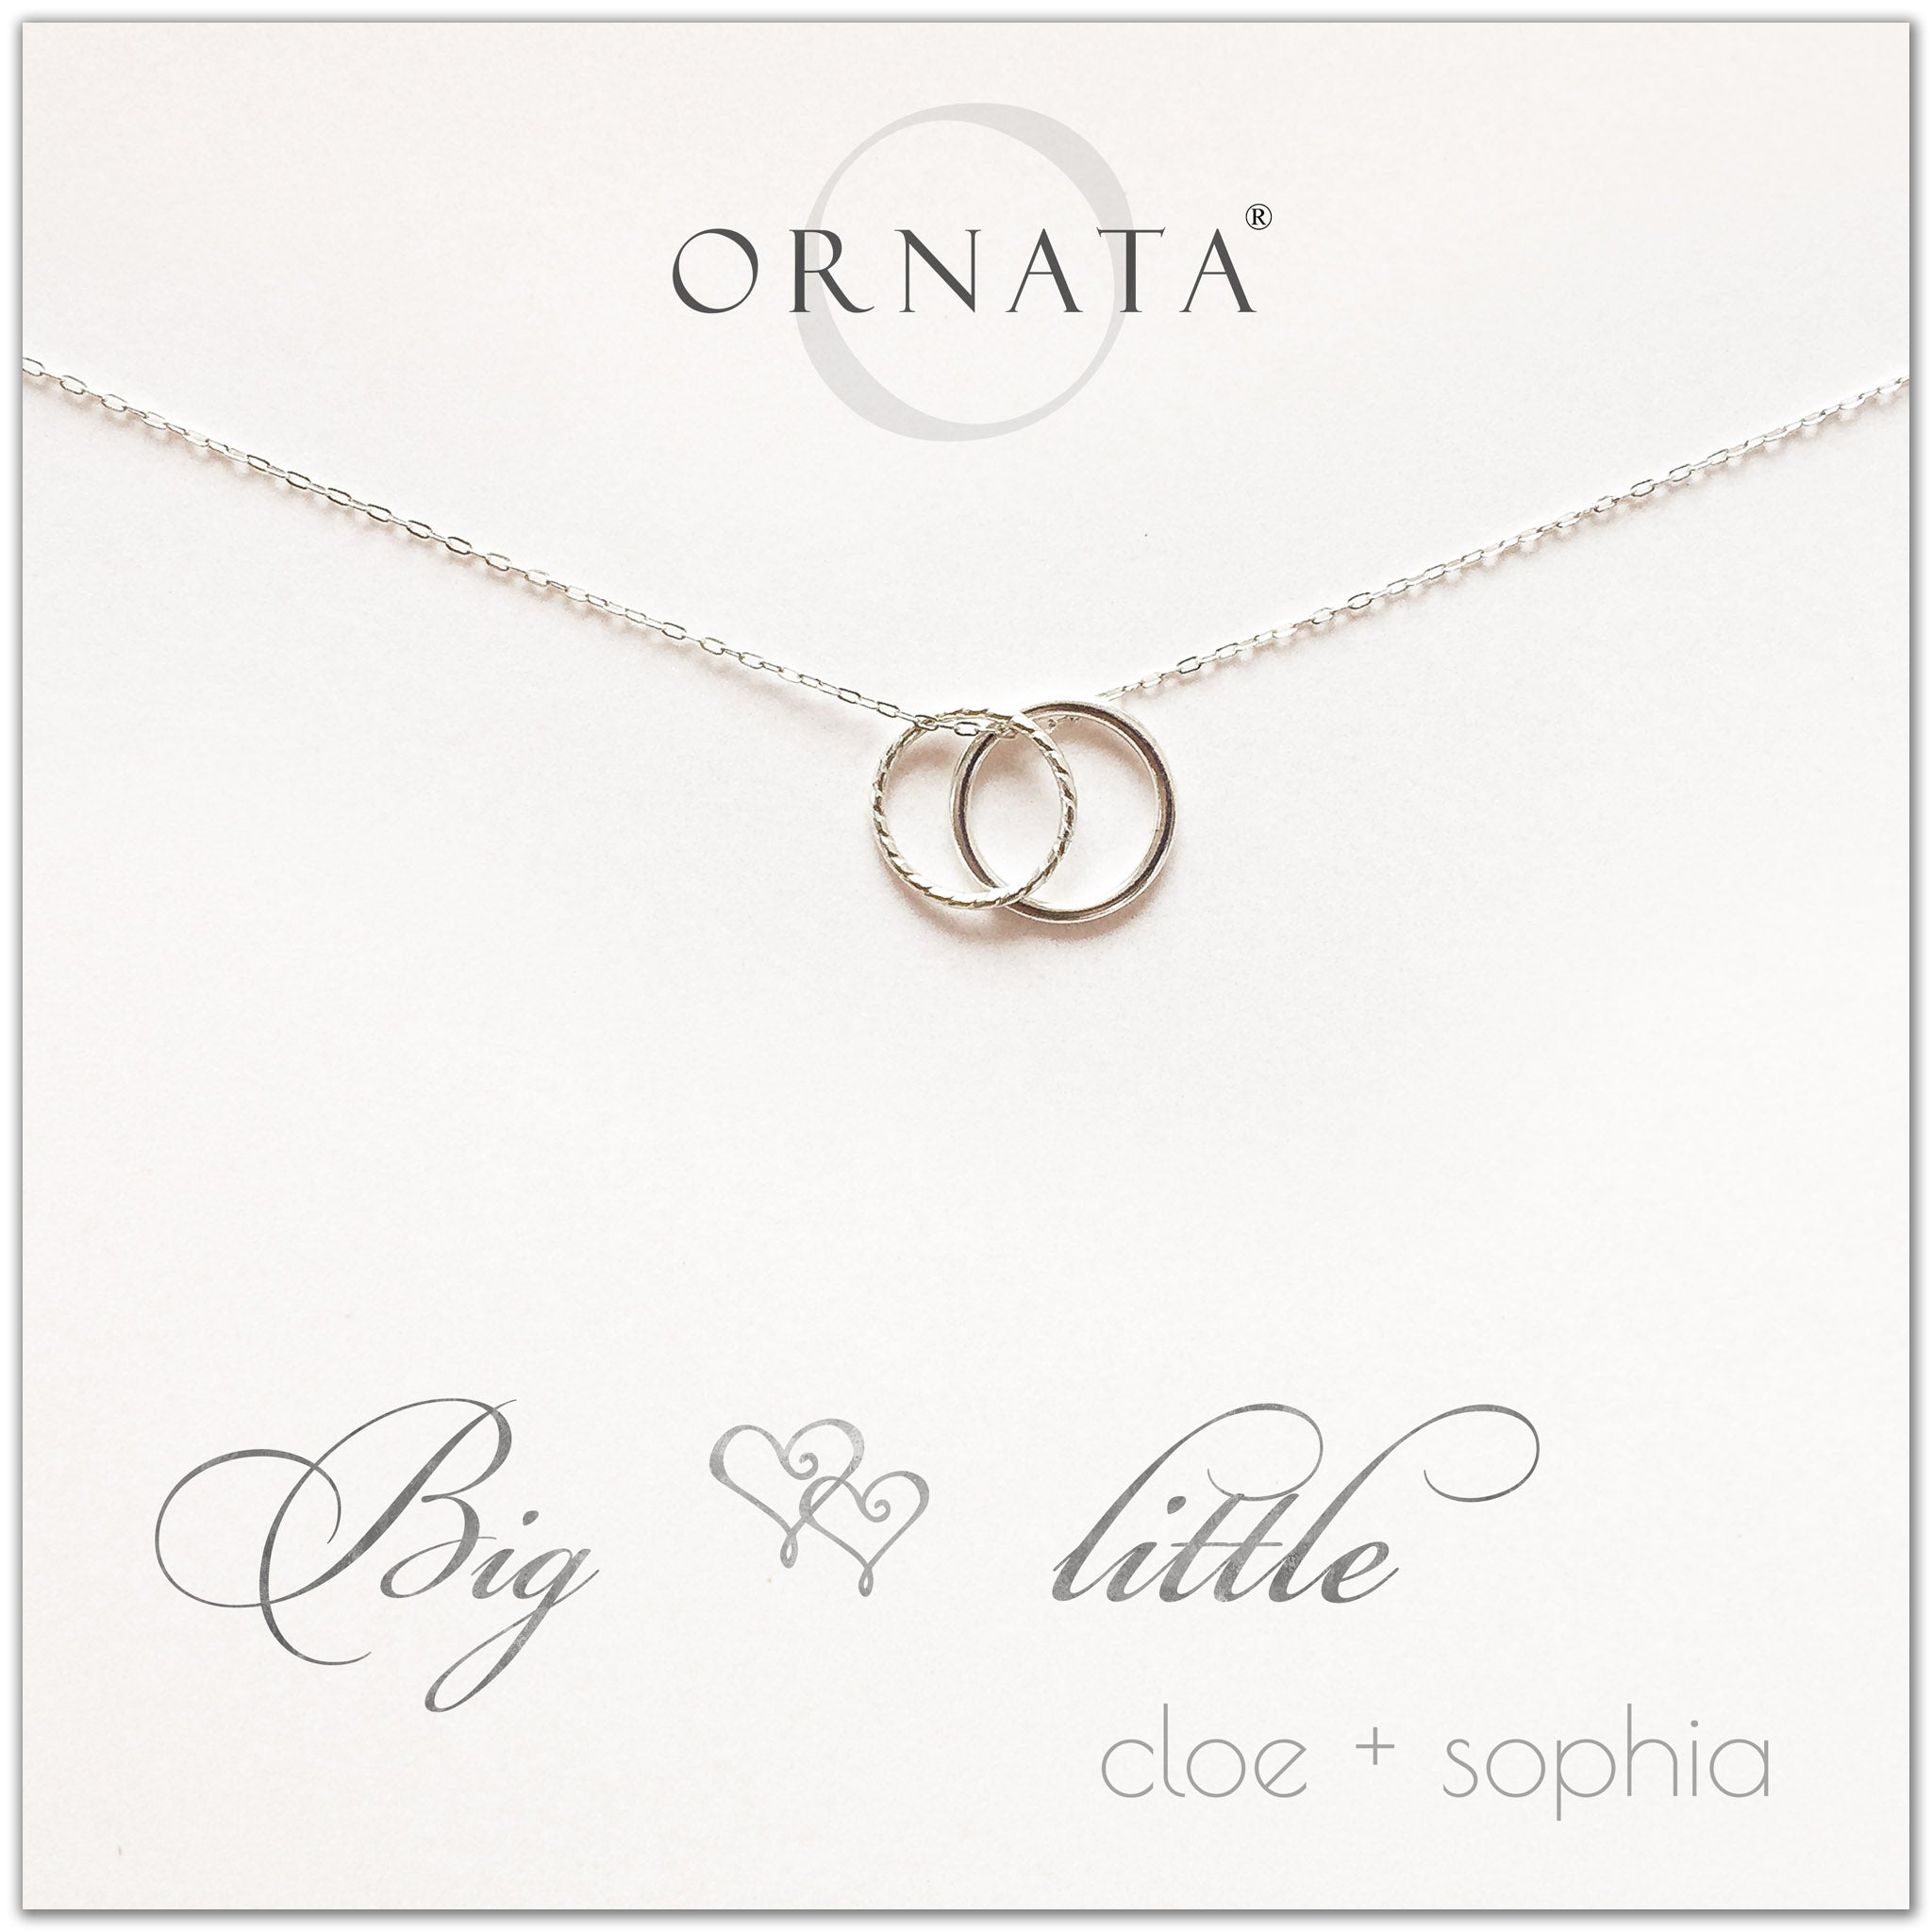 Big Little Sorority Sisters personalized necklace. Our sterling silver custom sorority necklaces make good gifts for sororities or sisters. Perfect for big little reveal day!